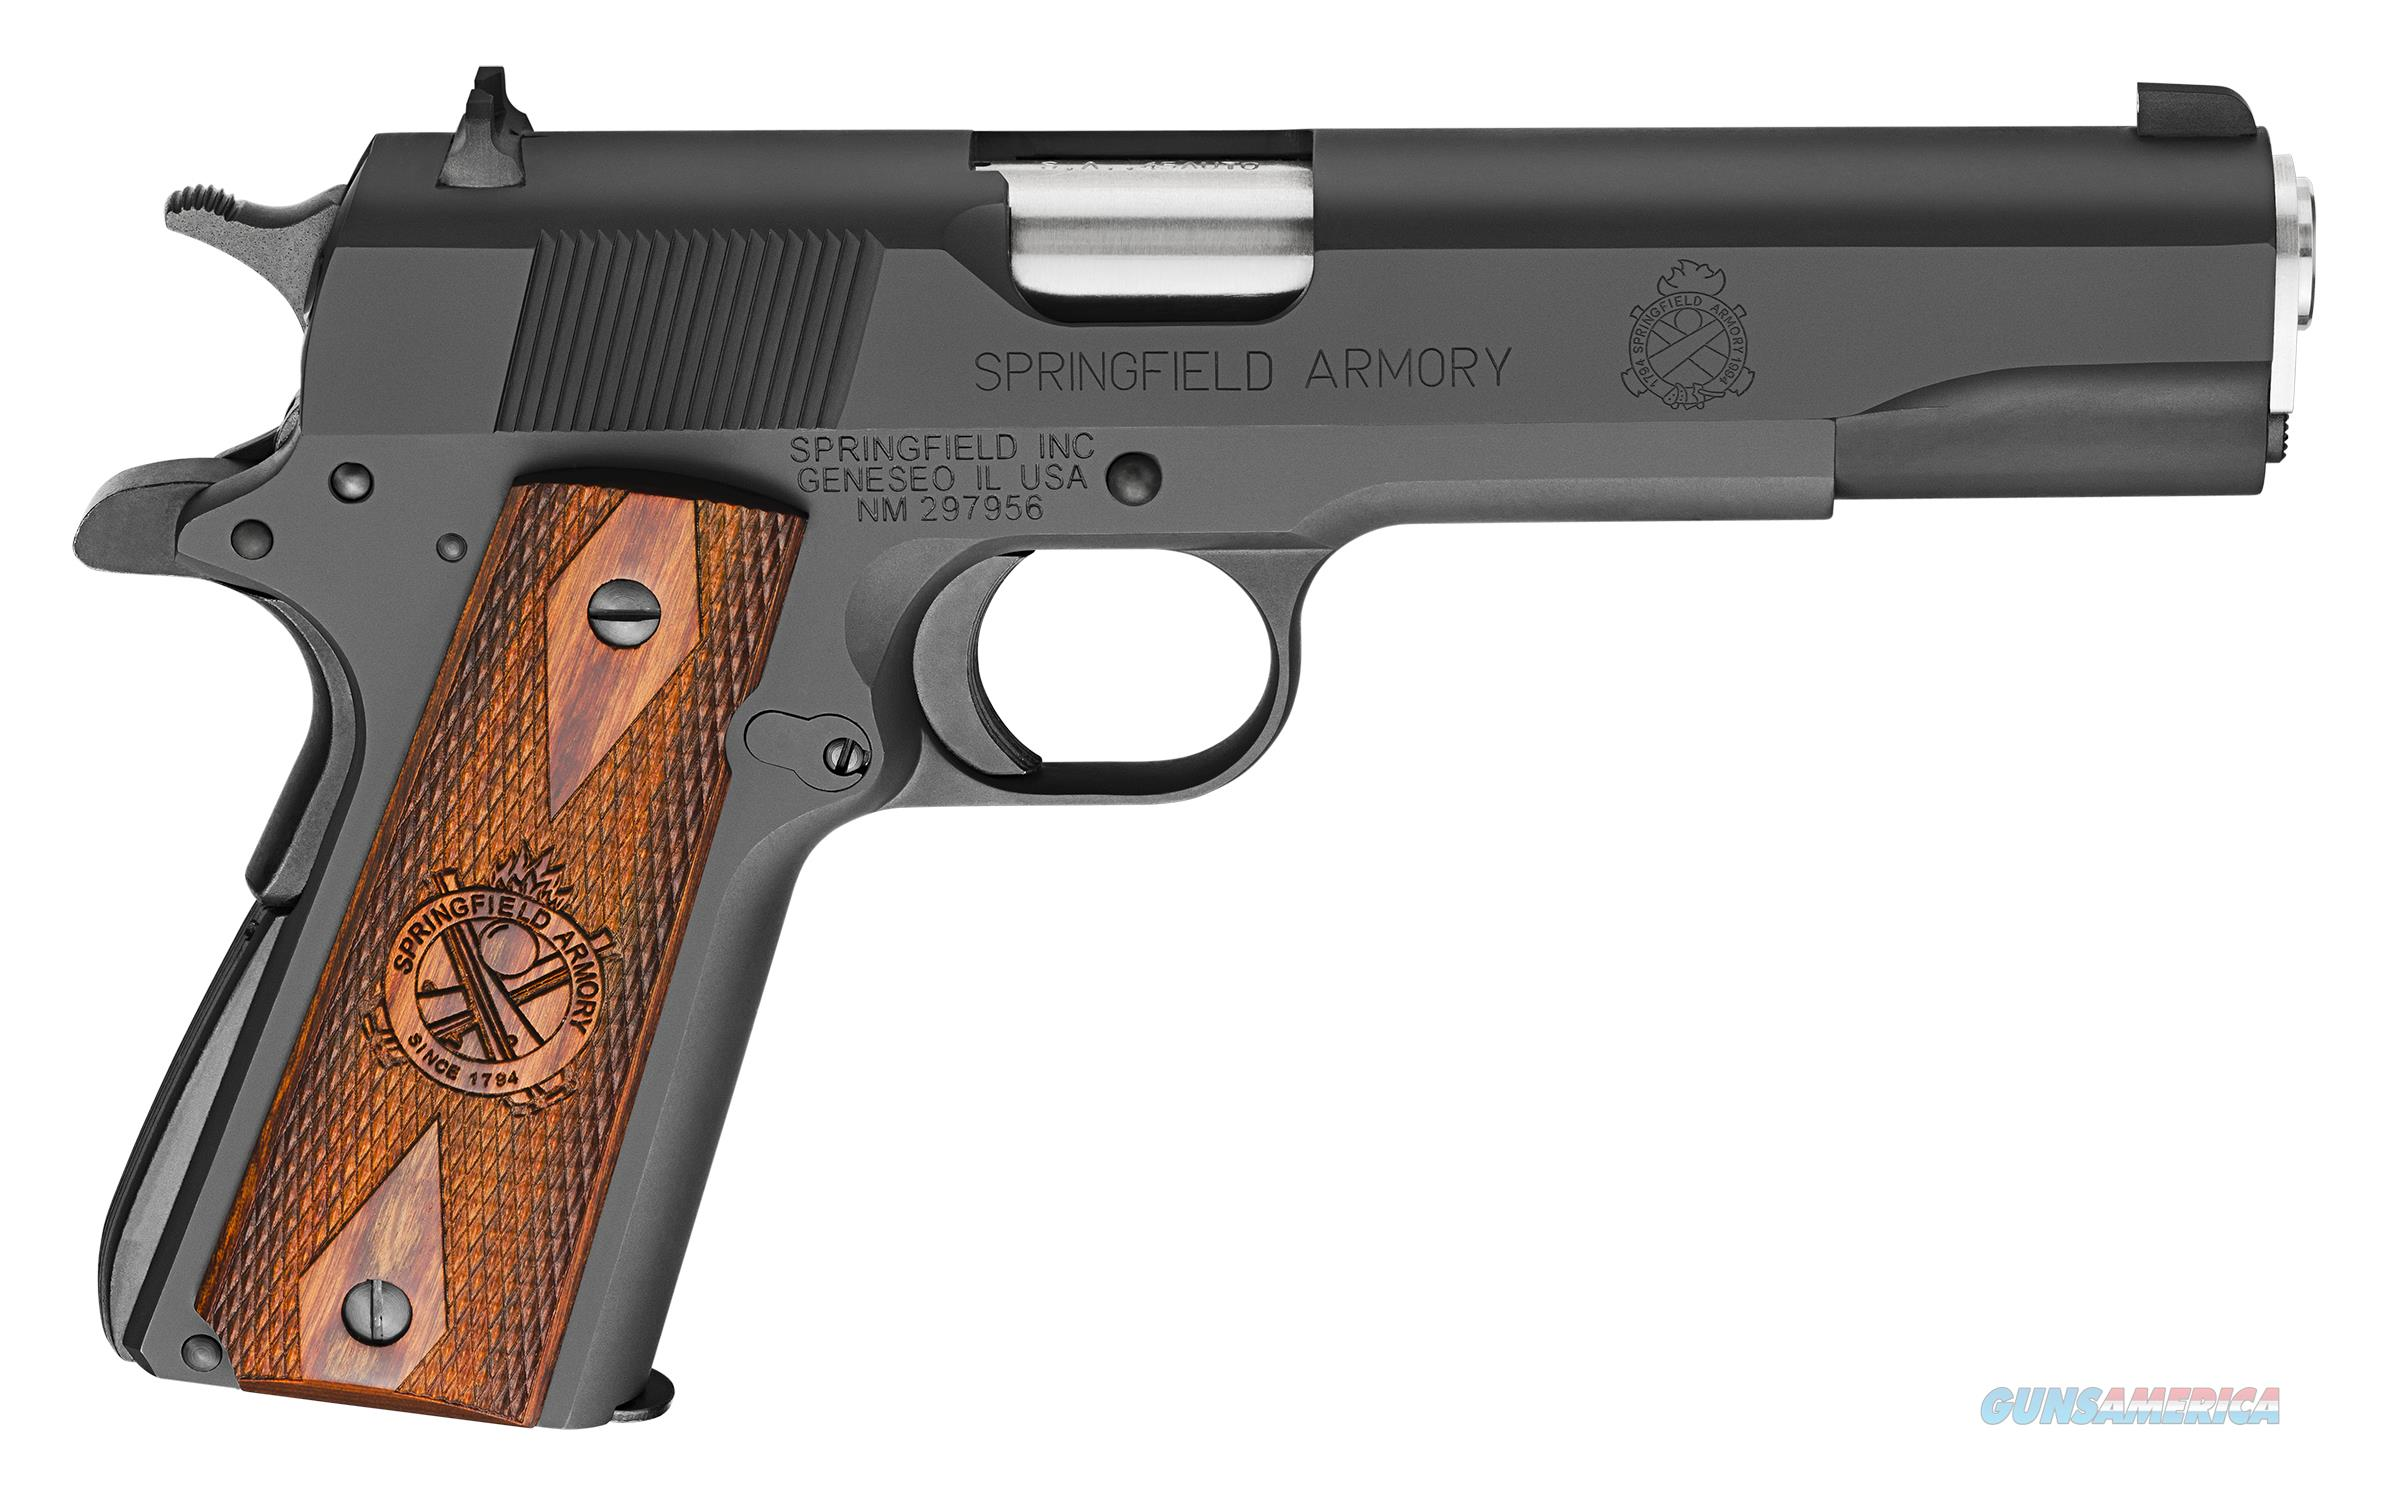 "Springfield Armory 1911 Mil-Spec Parkerized .45 ACP 5"" 7 Rds PB9108L   Guns > Pistols > Springfield Armory Pistols > 1911 Type"